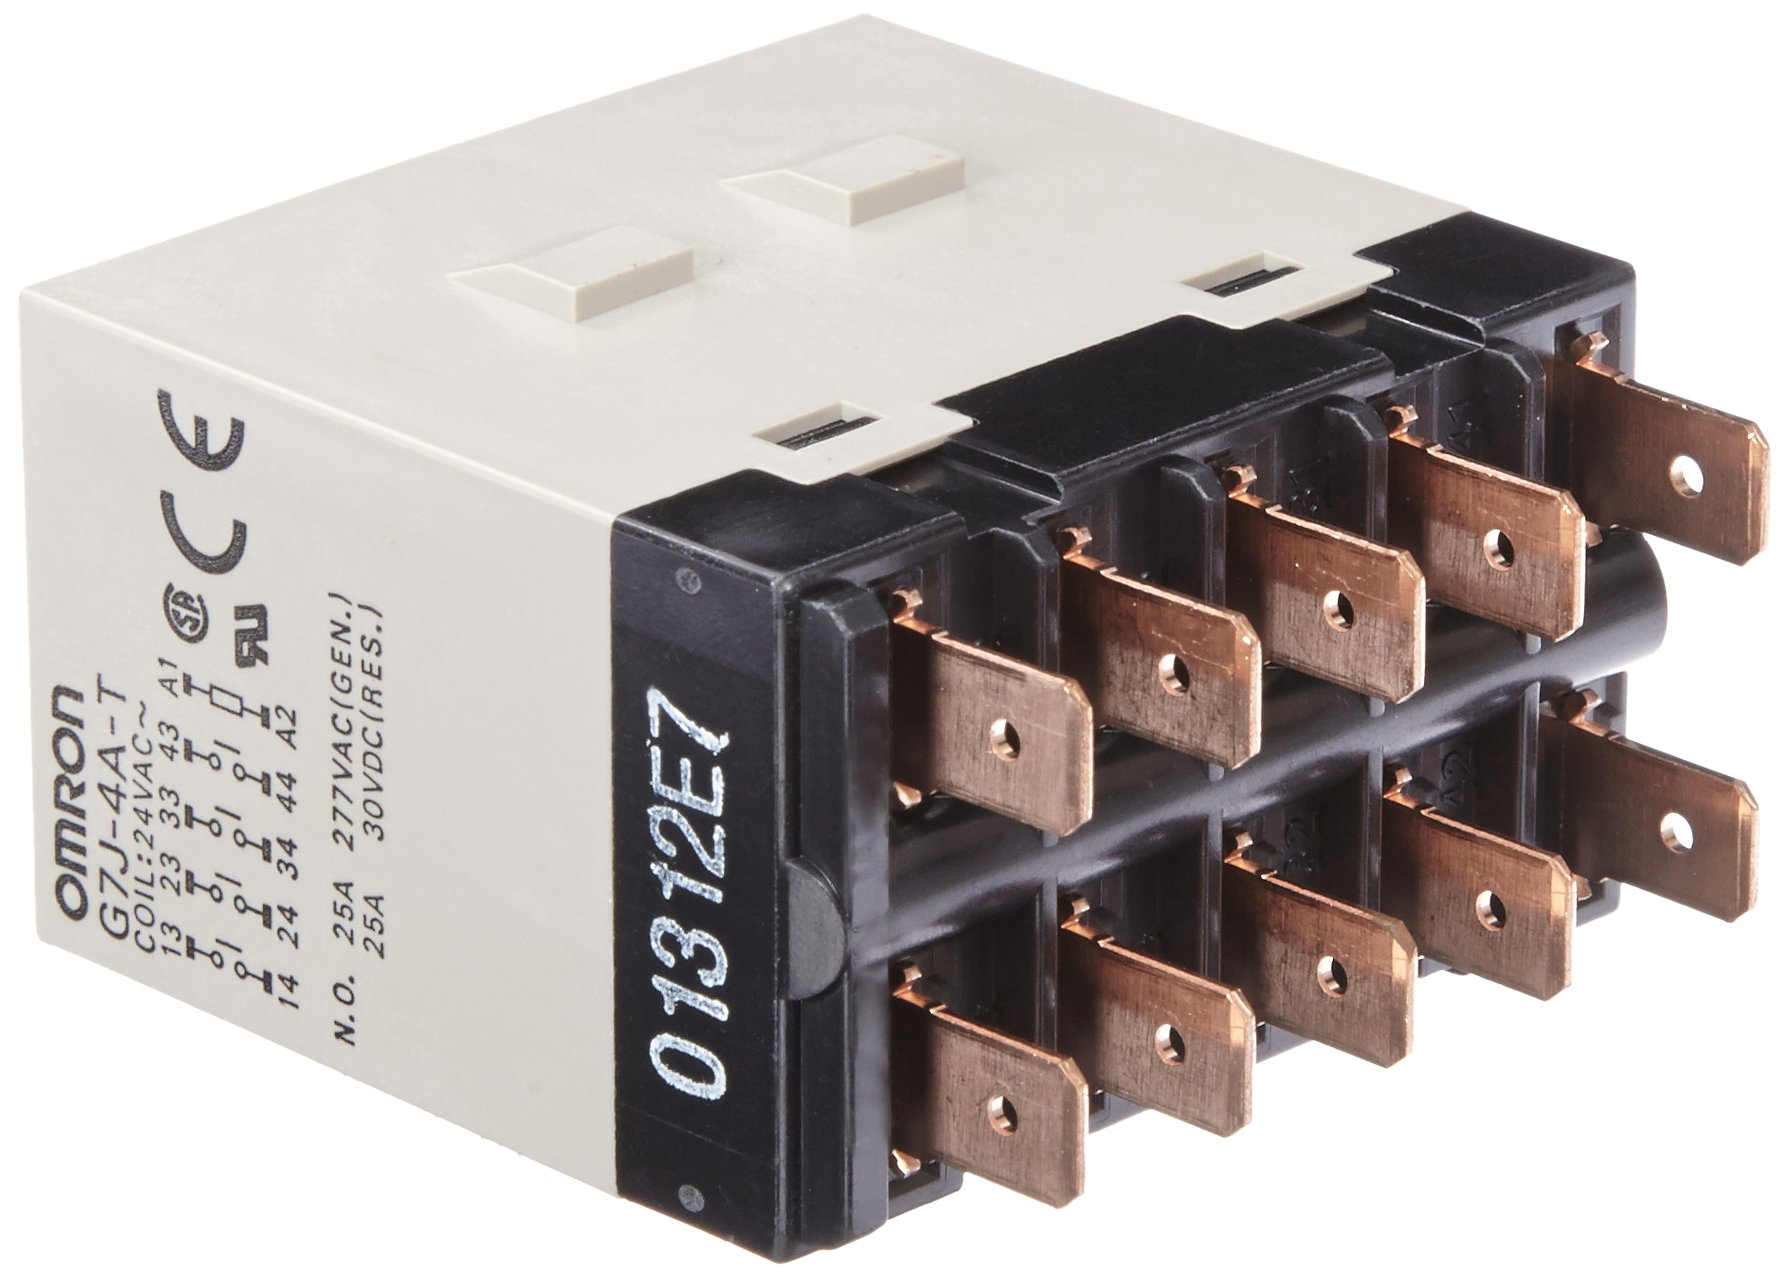 Omron G7J-4A-T AC24 General Purpose Relay, Quick-Connect Terminal, W-Bracket Mounting, Quadtruple Pole Single Throw Normally Open Contacts,  75 mA Rated Load Current, 24 VAC Rated Load Voltage